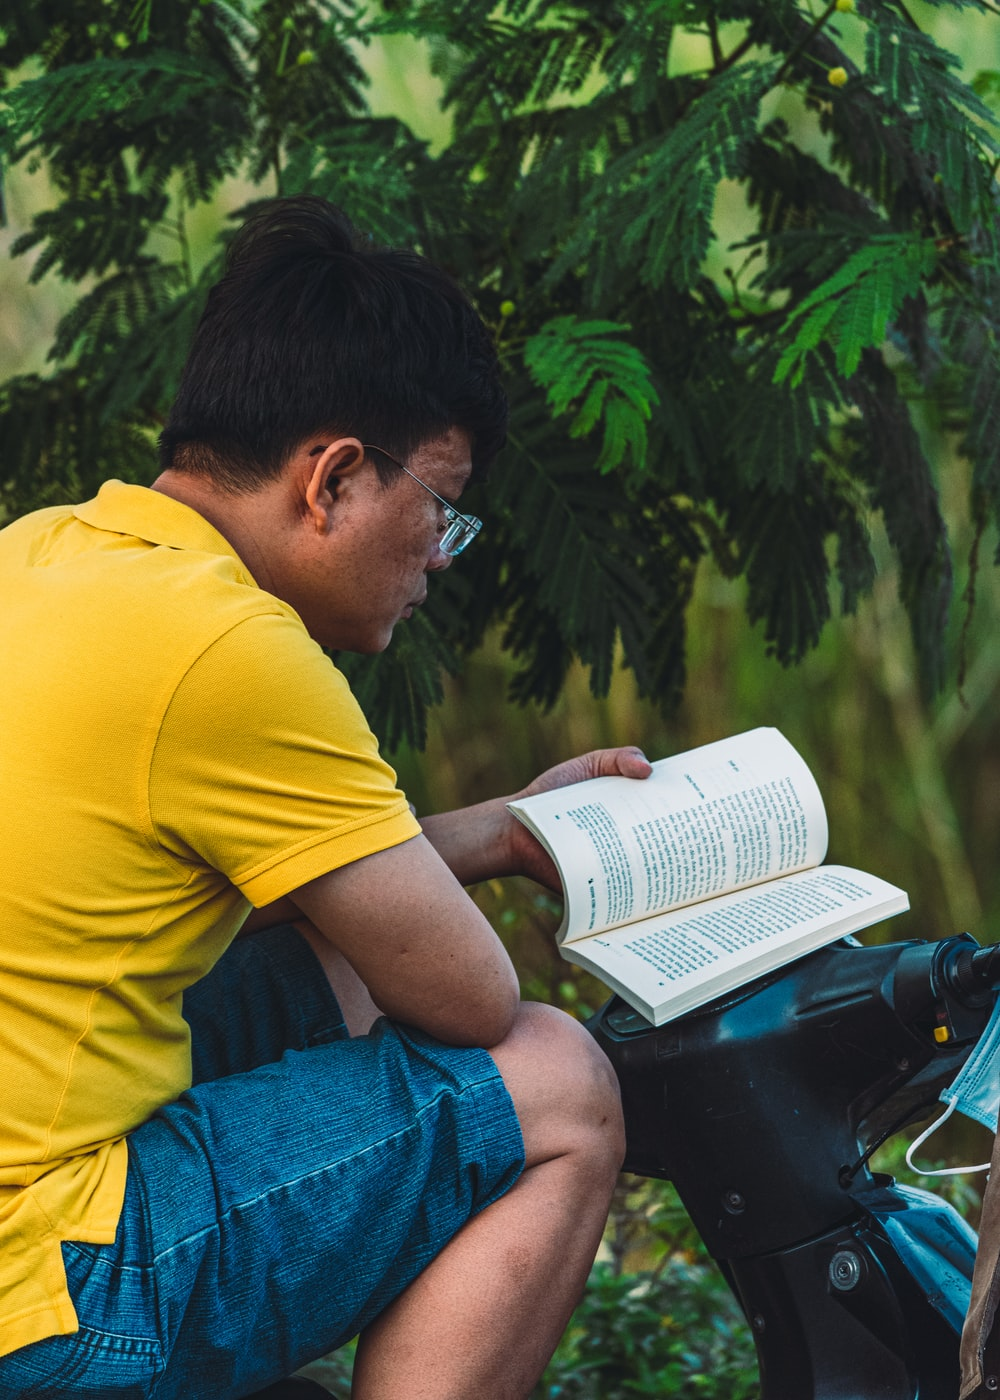 man in yellow t-shirt and blue denim jeans reading book